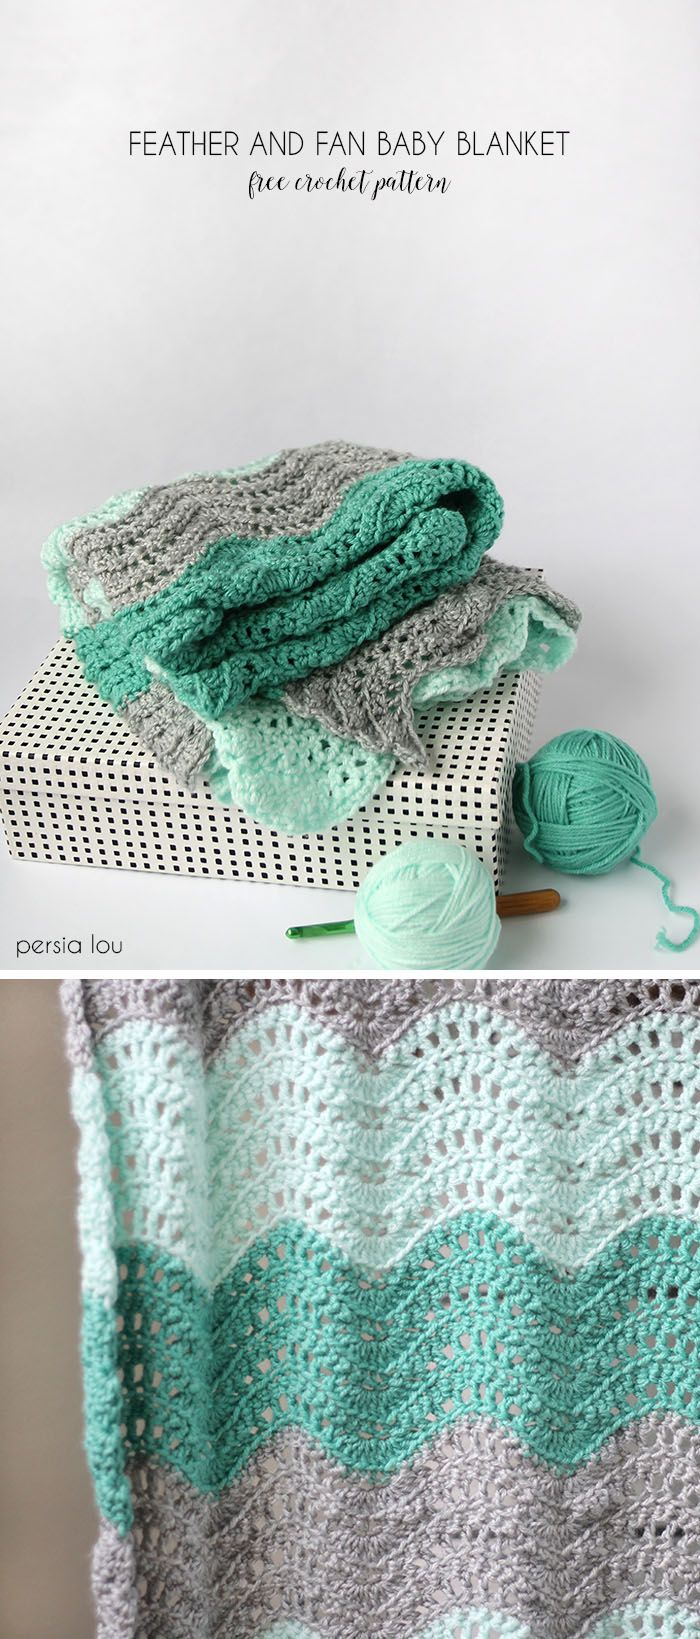 Crochet feather and fan baby blanket free pattern crochet crochet feather and fan baby blanket free pattern bankloansurffo Choice Image